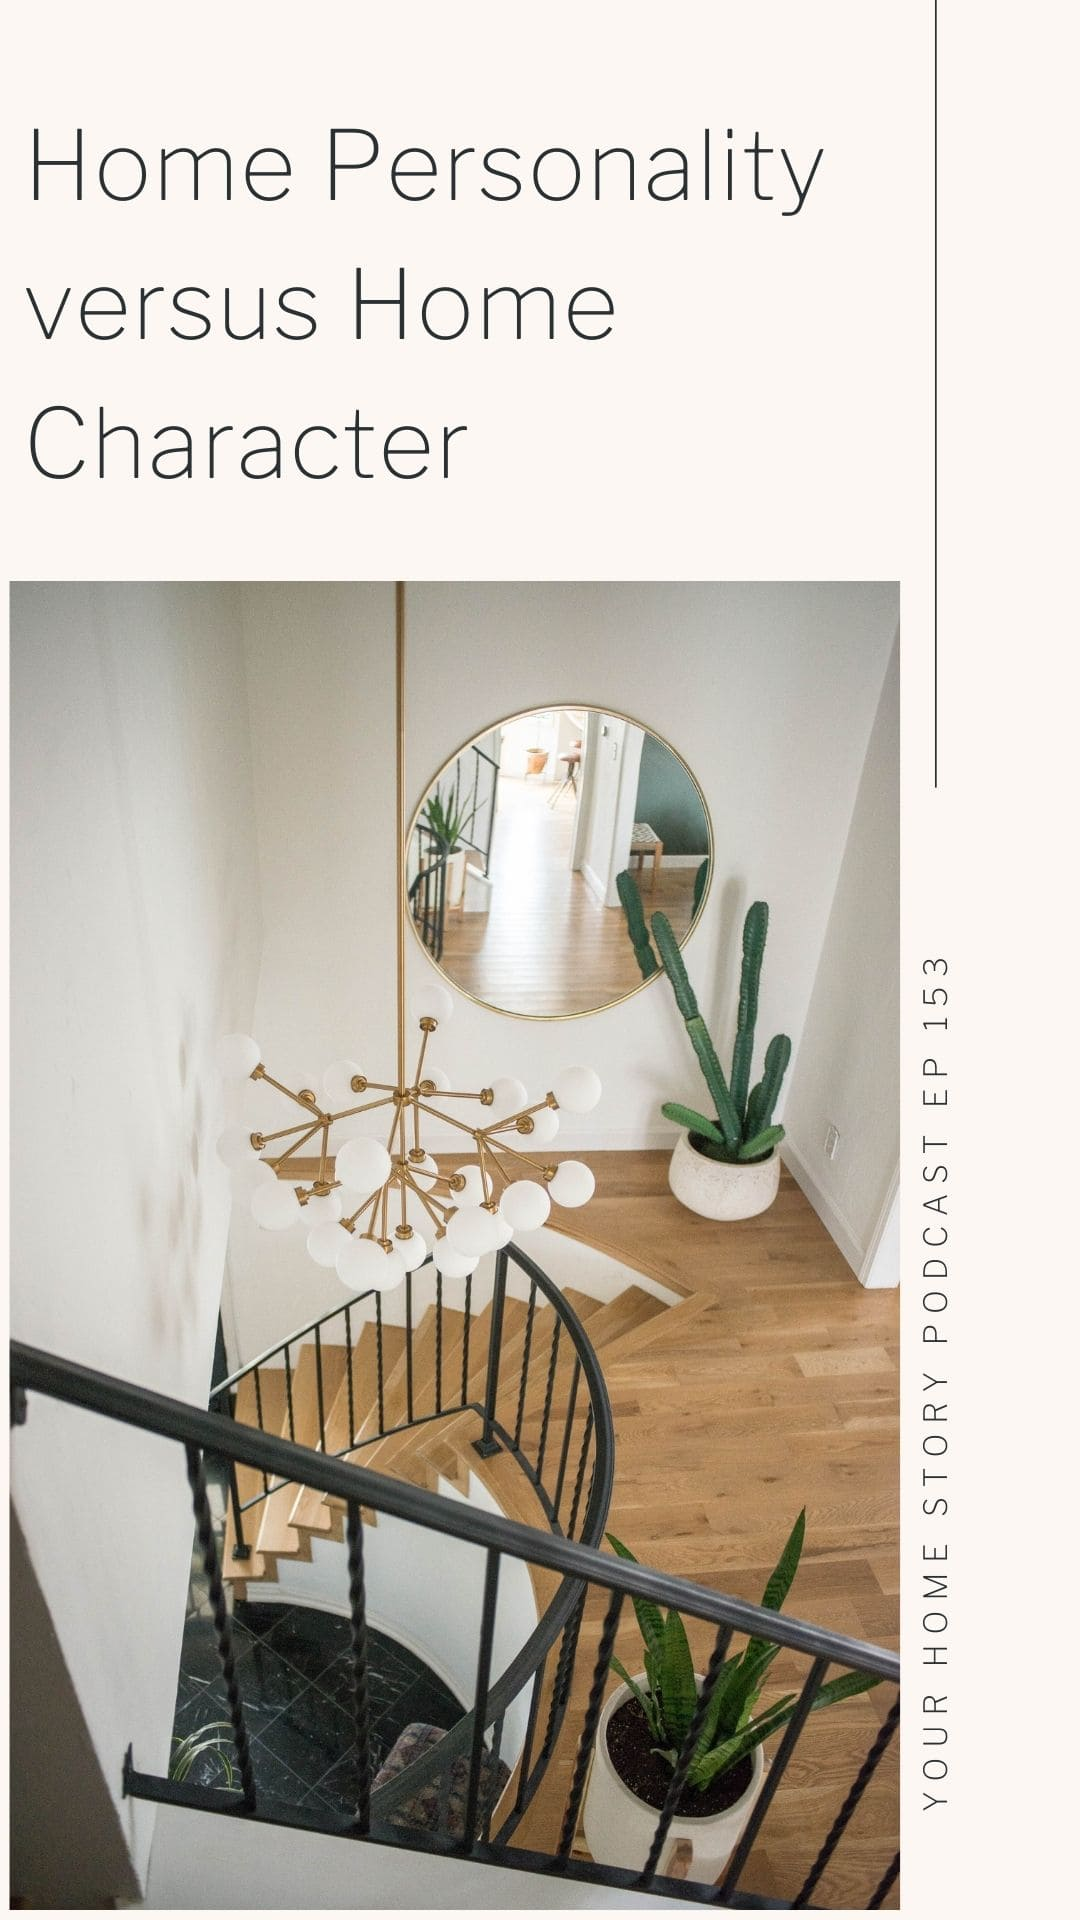 What is home personality? Home character? Showing a circle stairs for home character.